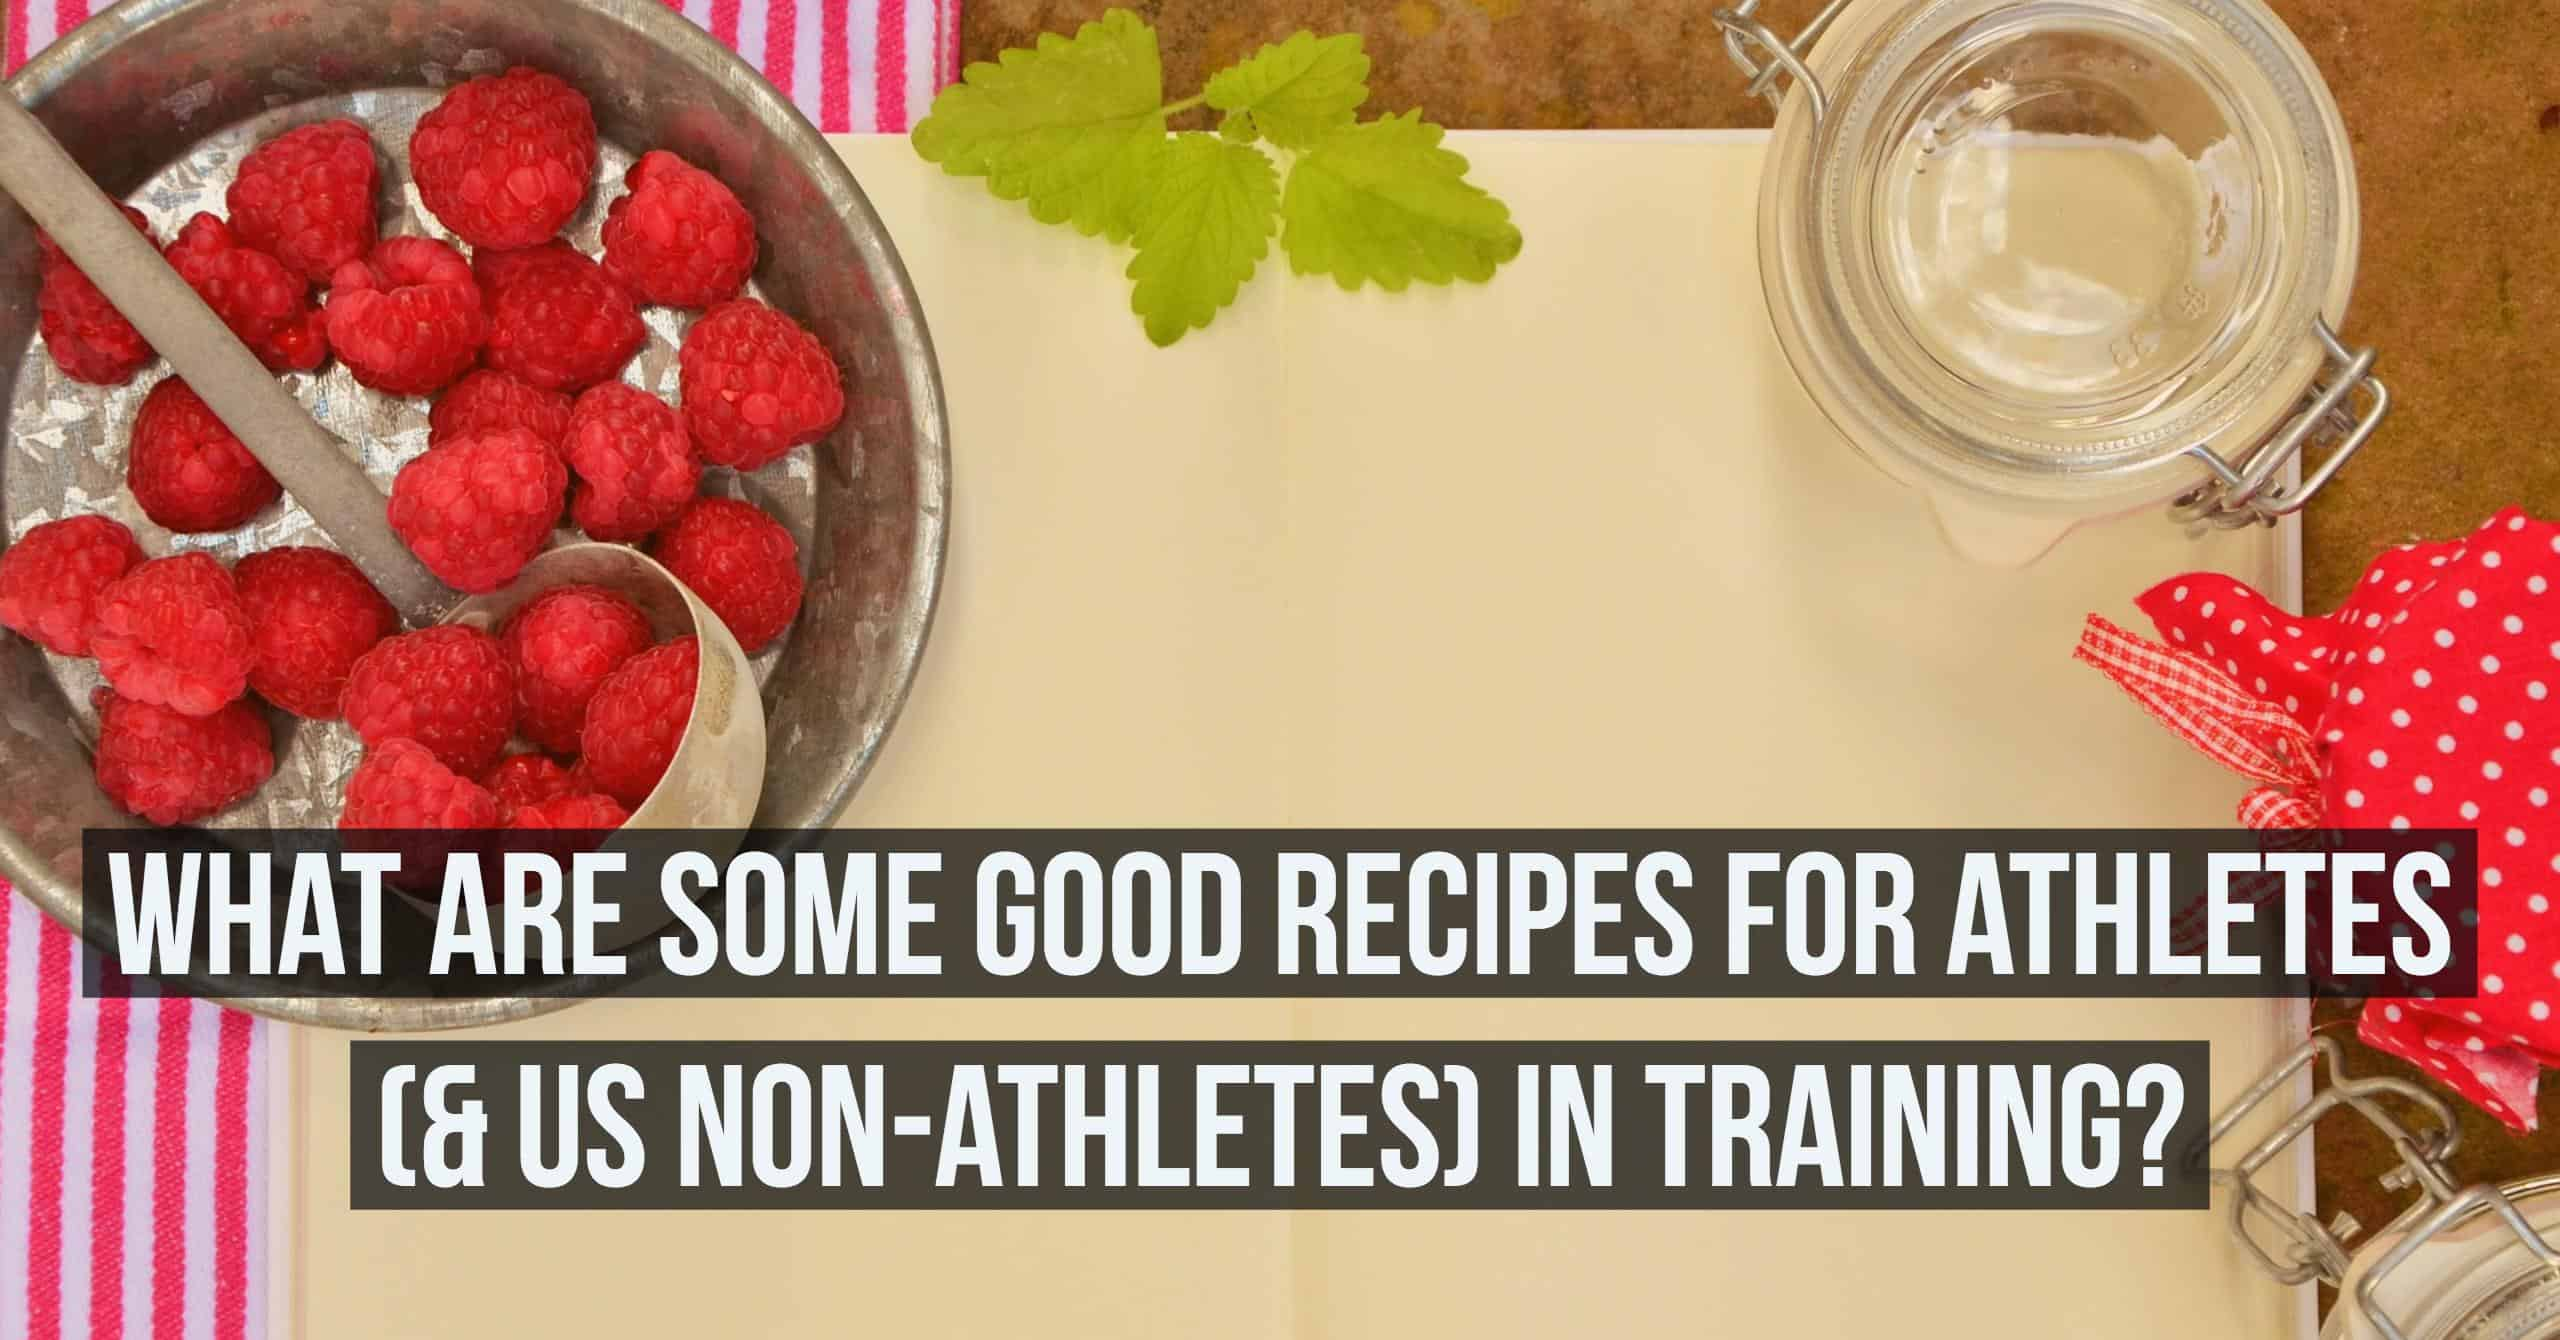 Runninghas soooo many benefits for your health. Adding healthy eating can help add even more benefits while you are training. We answer the question: what are some good recipes for athletes (& us non-athletes) in training?